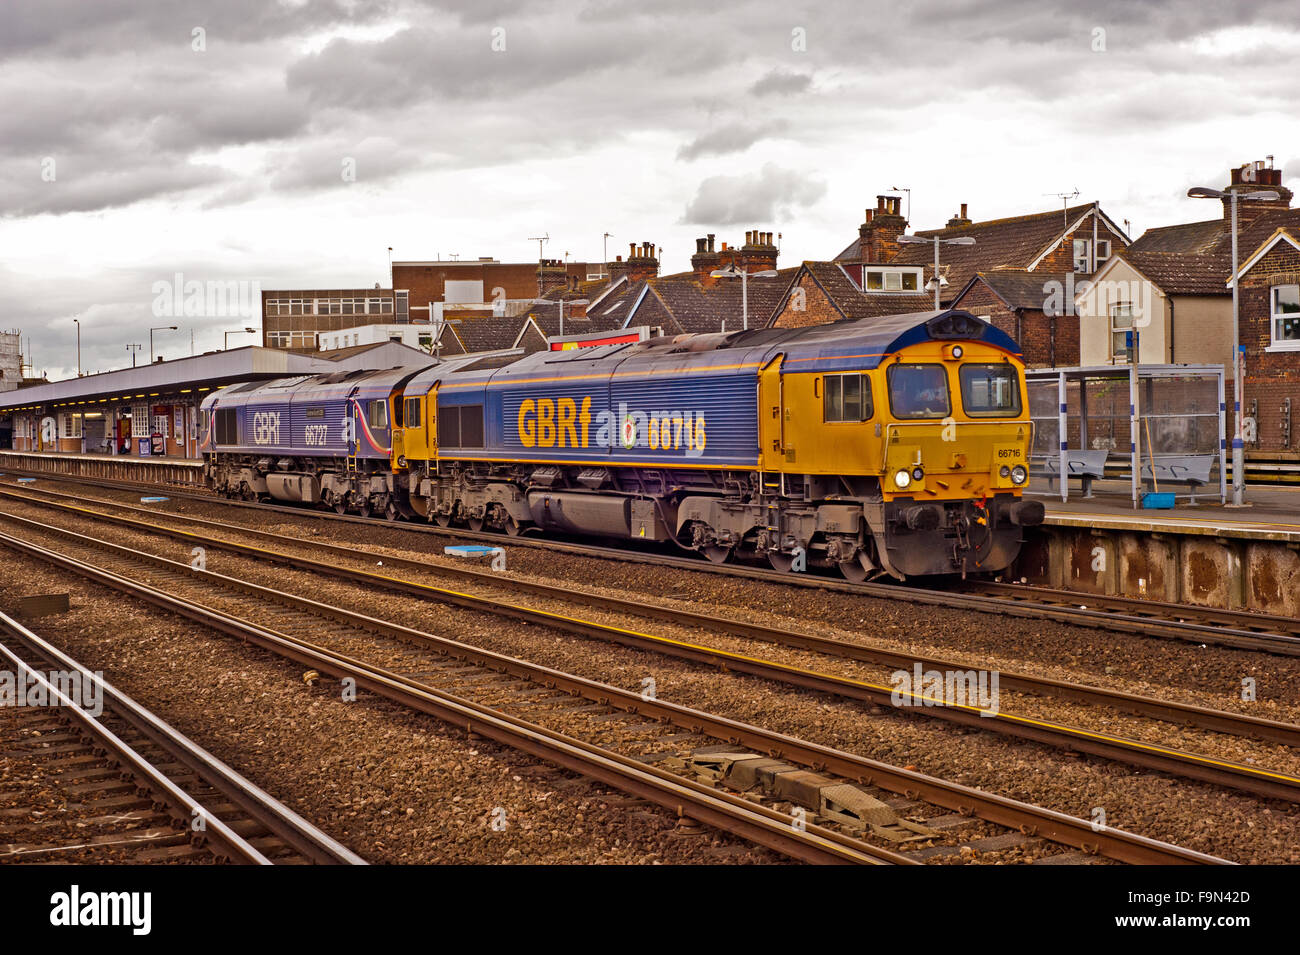 Deisels at Tonbridge in Kent - Stock Image